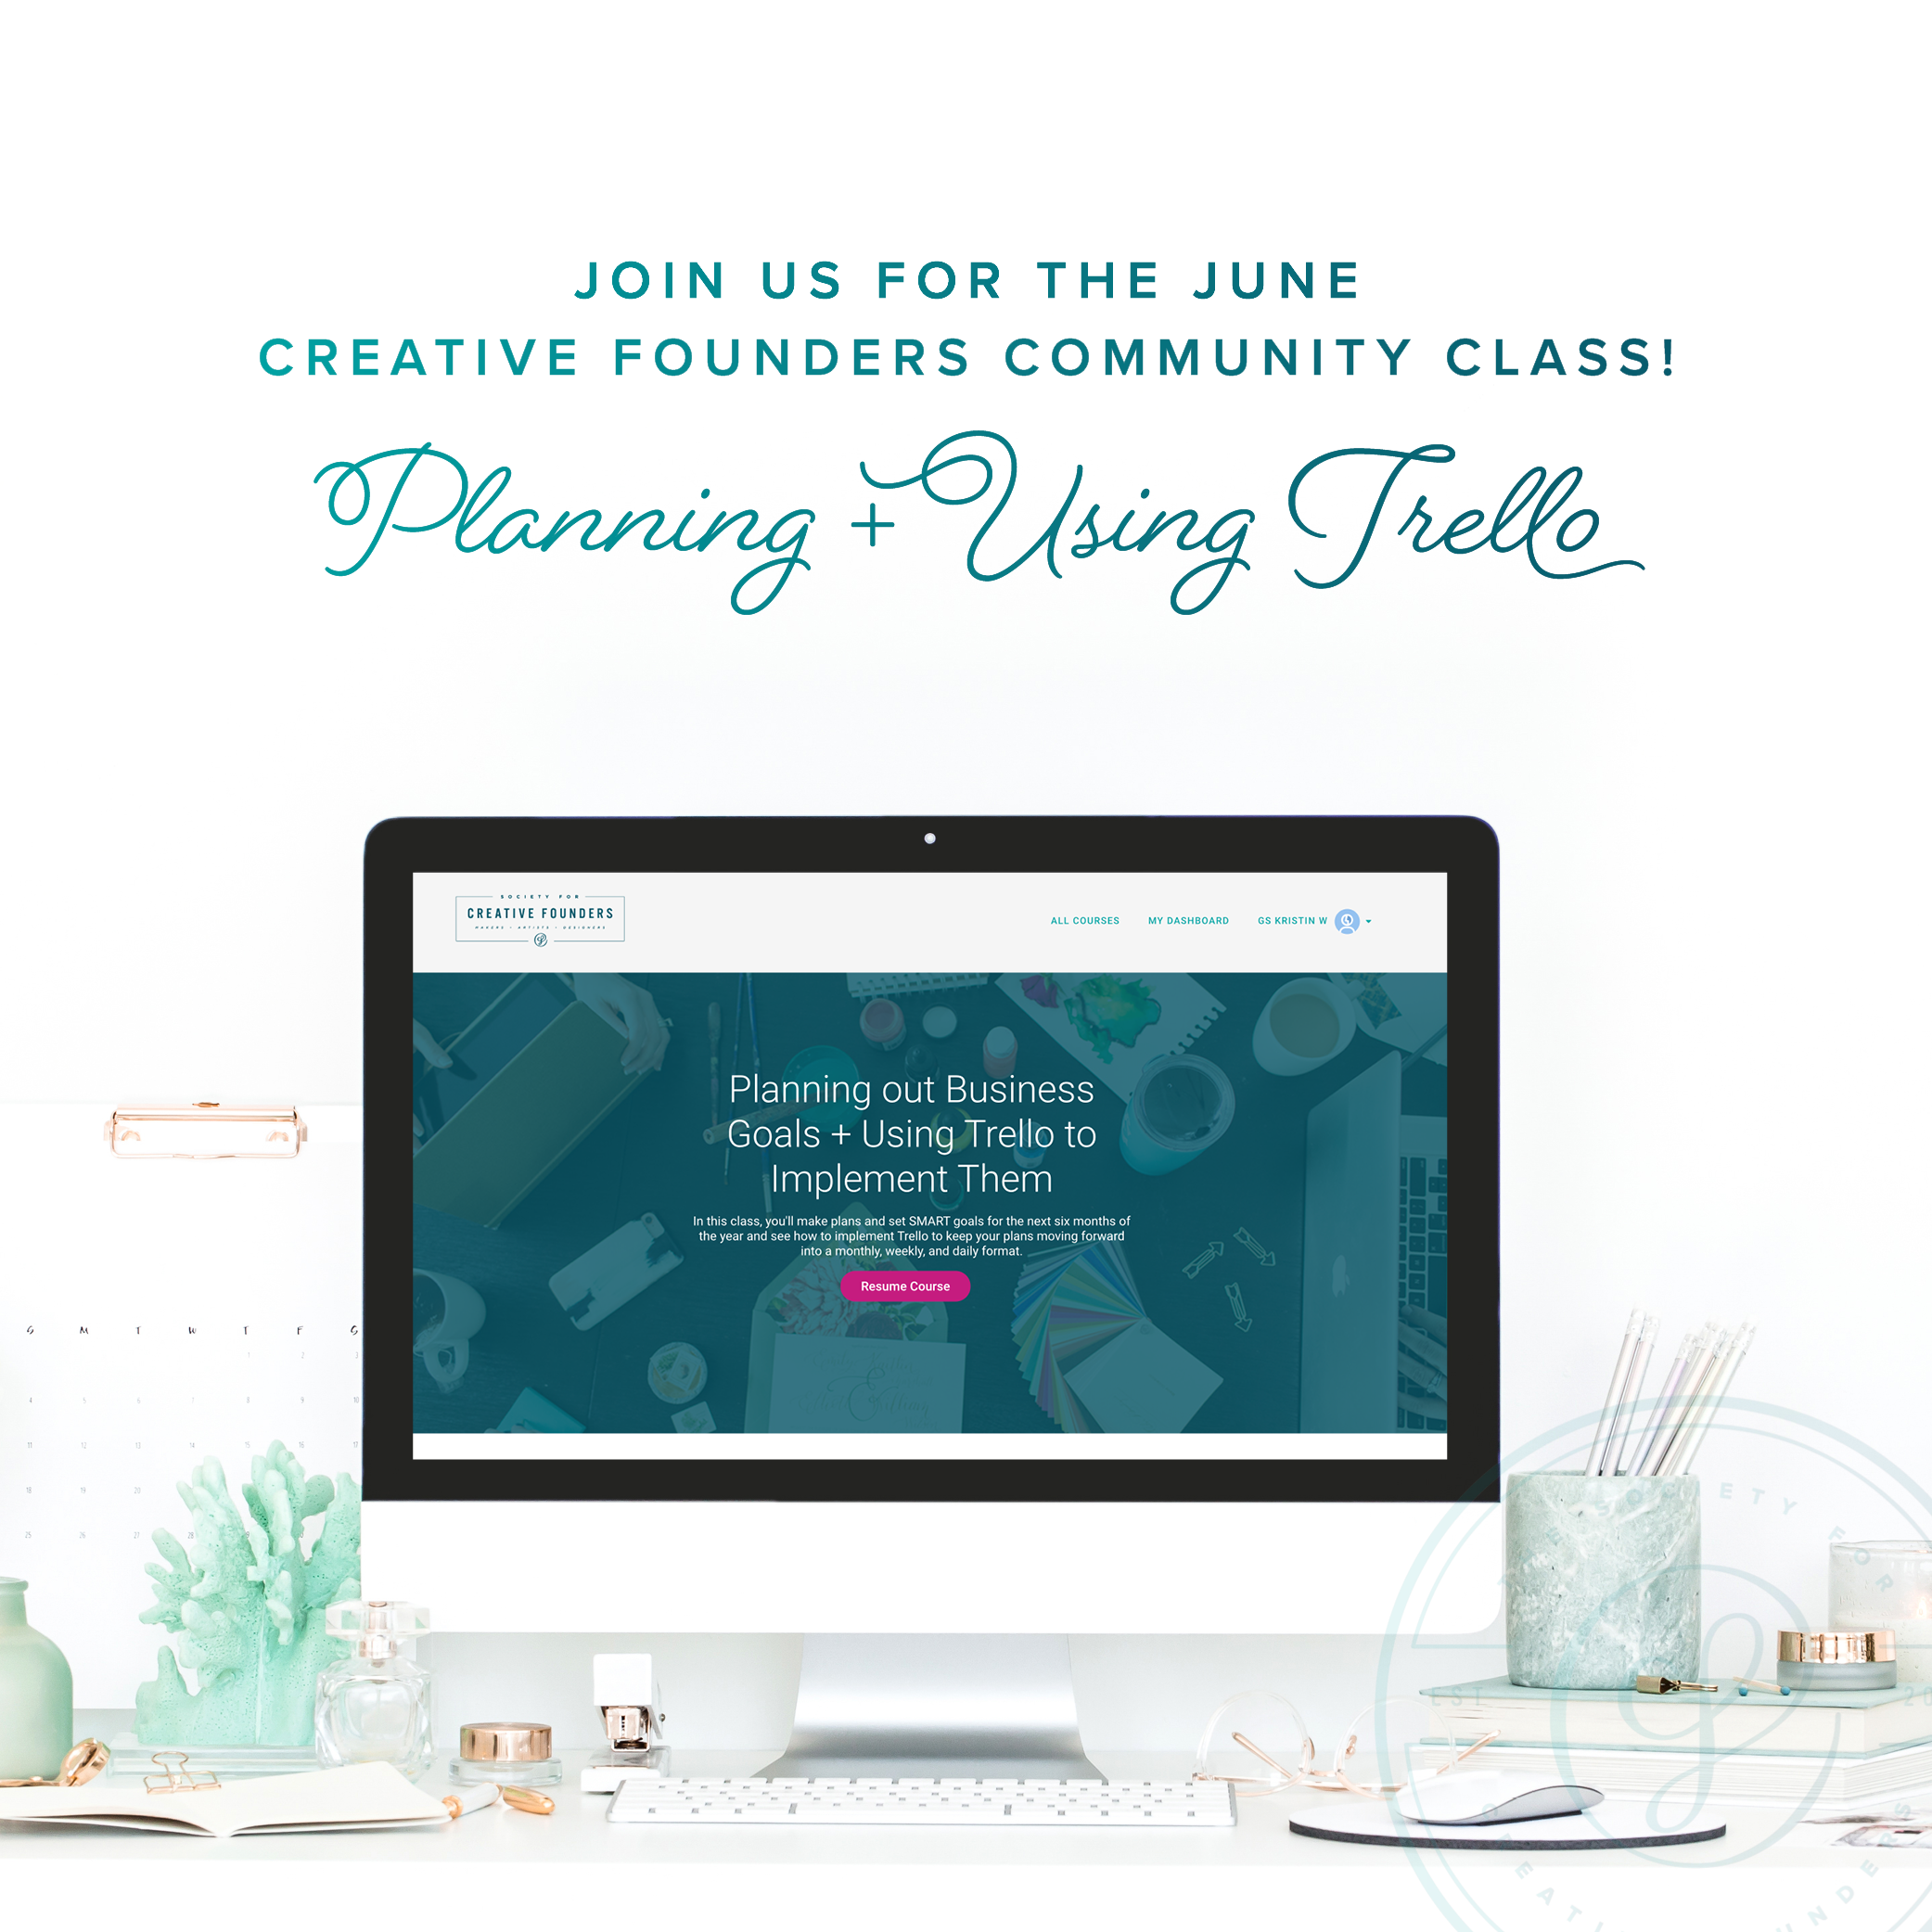 June 2018 Community Class - Planning and Using Trello for your Business by the Society for Creative Founders